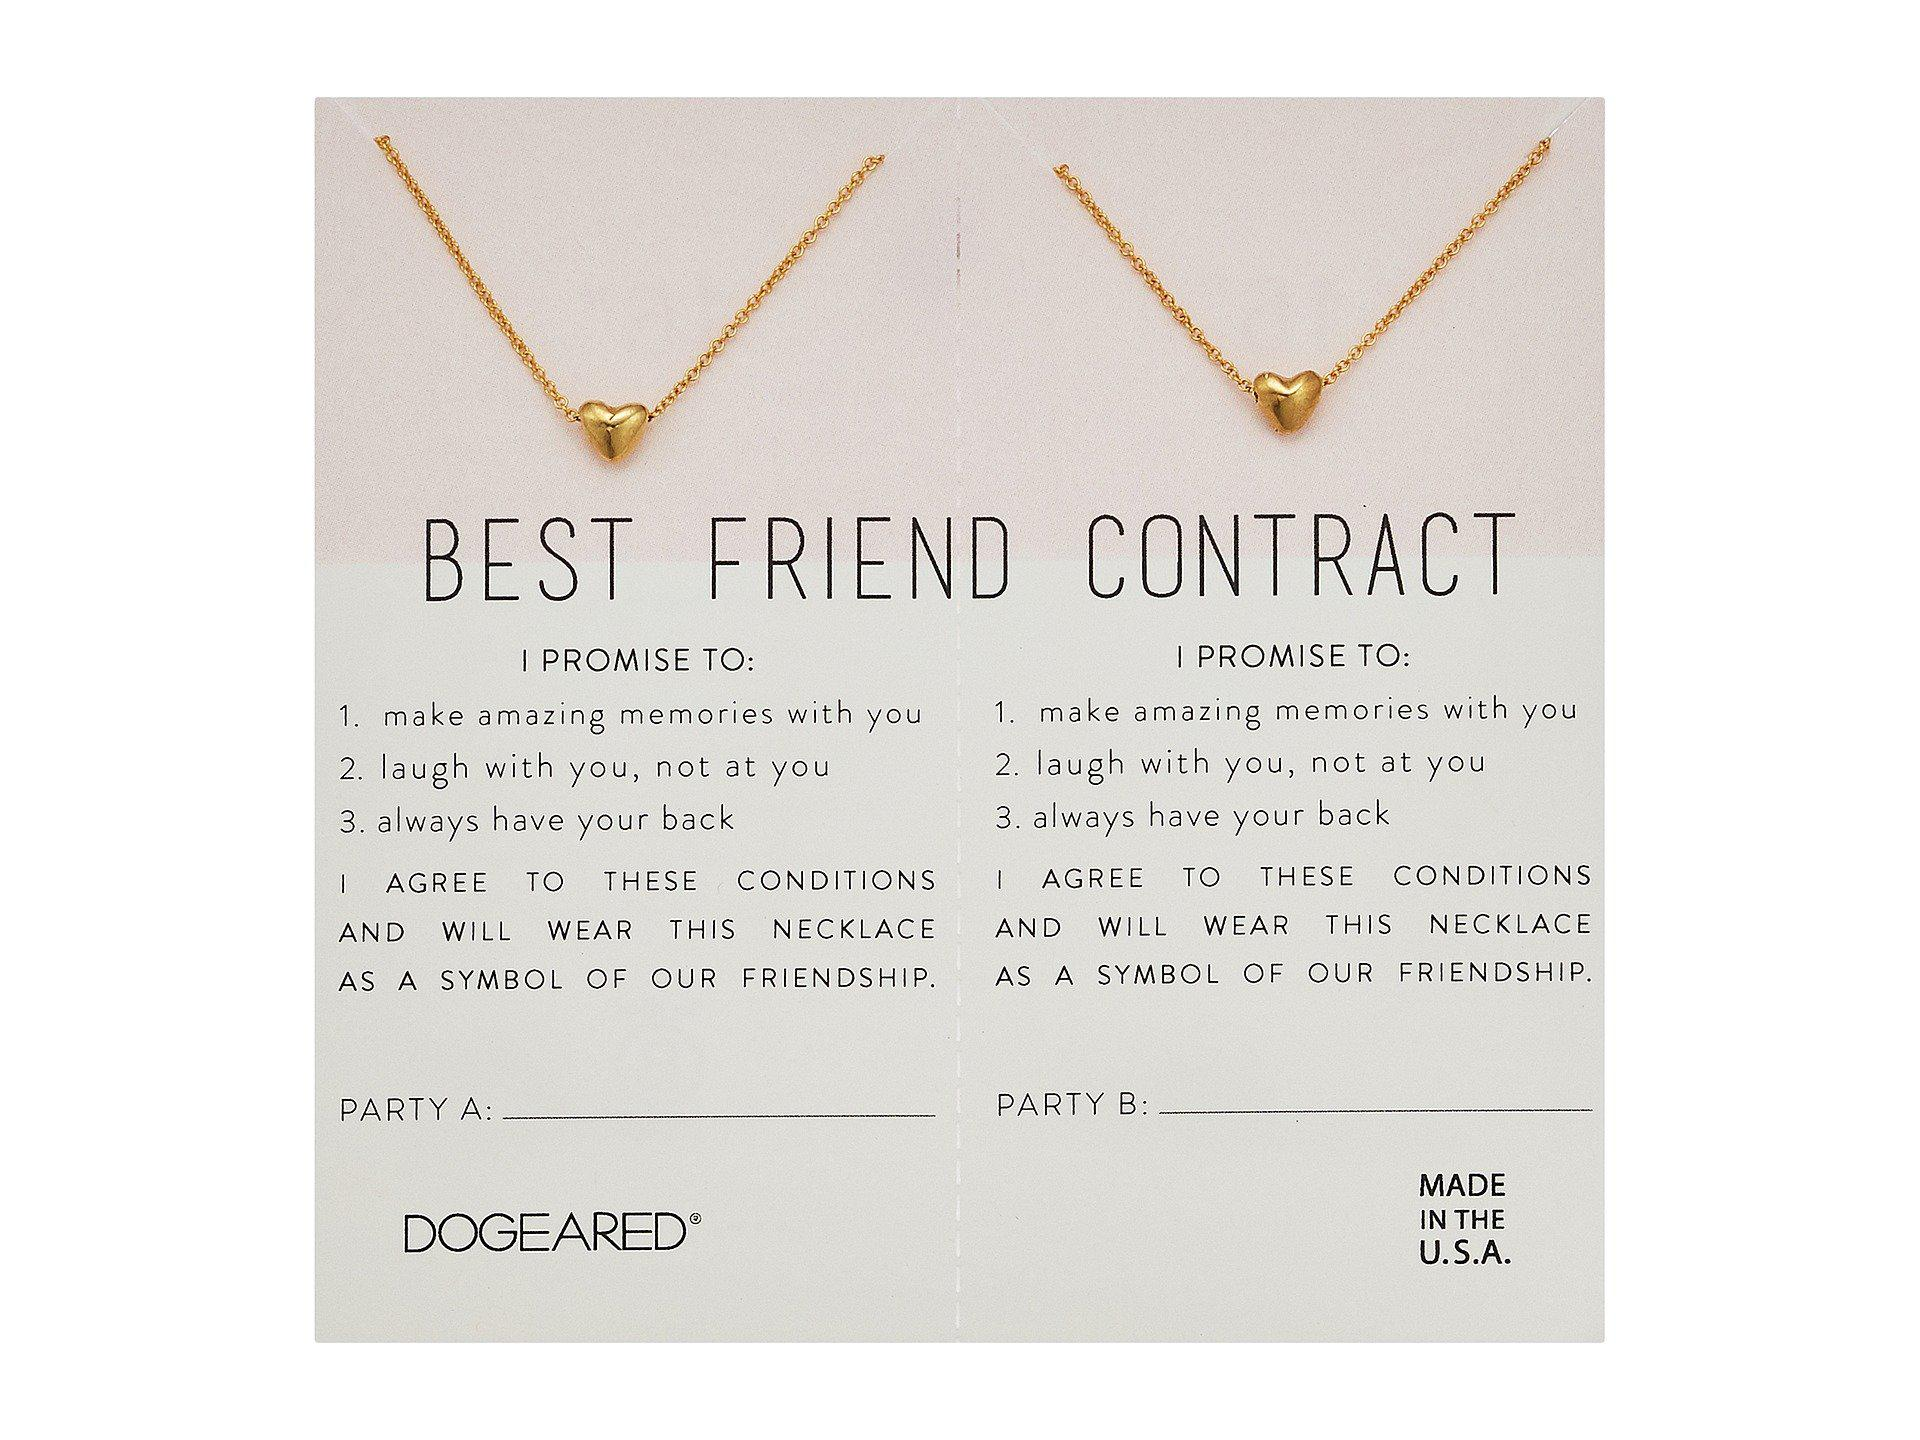 Lyst dogeared best friend contract set of 2 heart bead necklaces view fullscreen altavistaventures Image collections